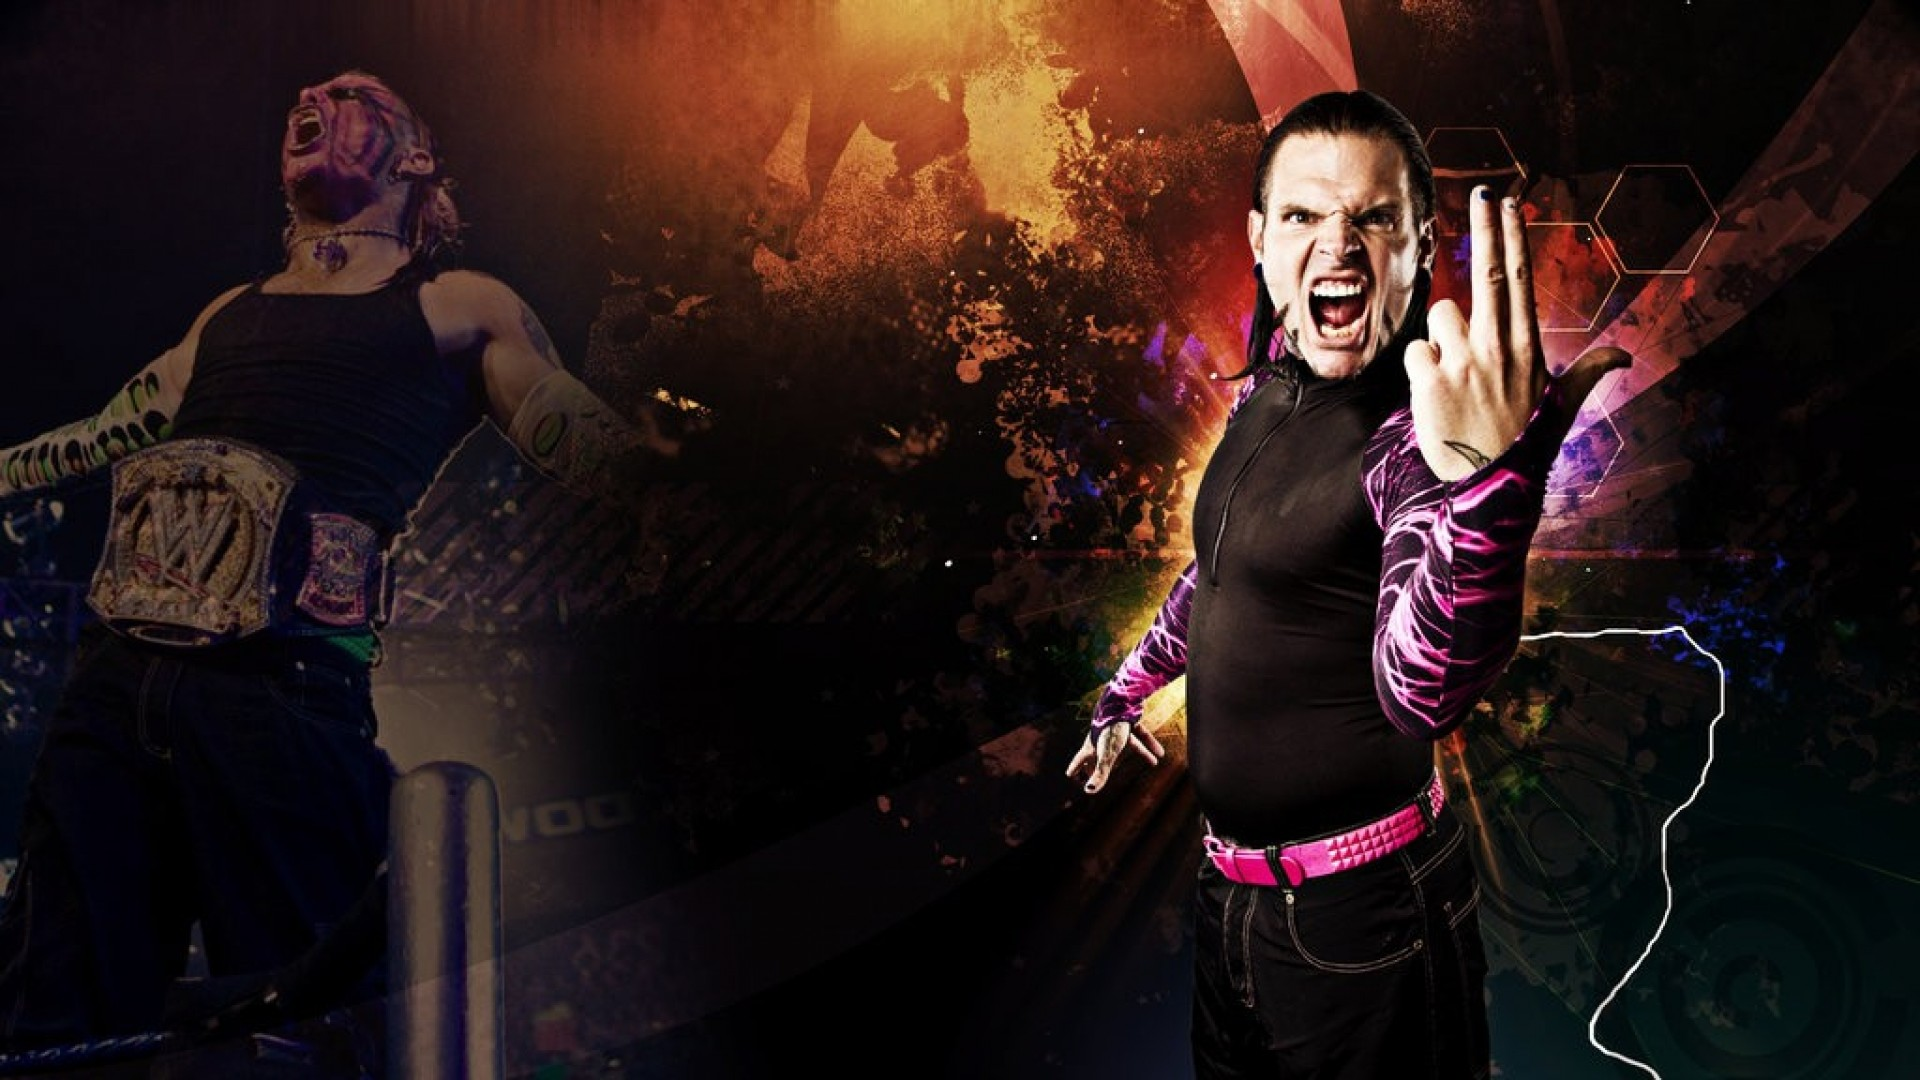 Jeff hardy wallpaper 73 images 1920x1080 jeff hardy wwe superstar hd wallpaper wide voltagebd Image collections